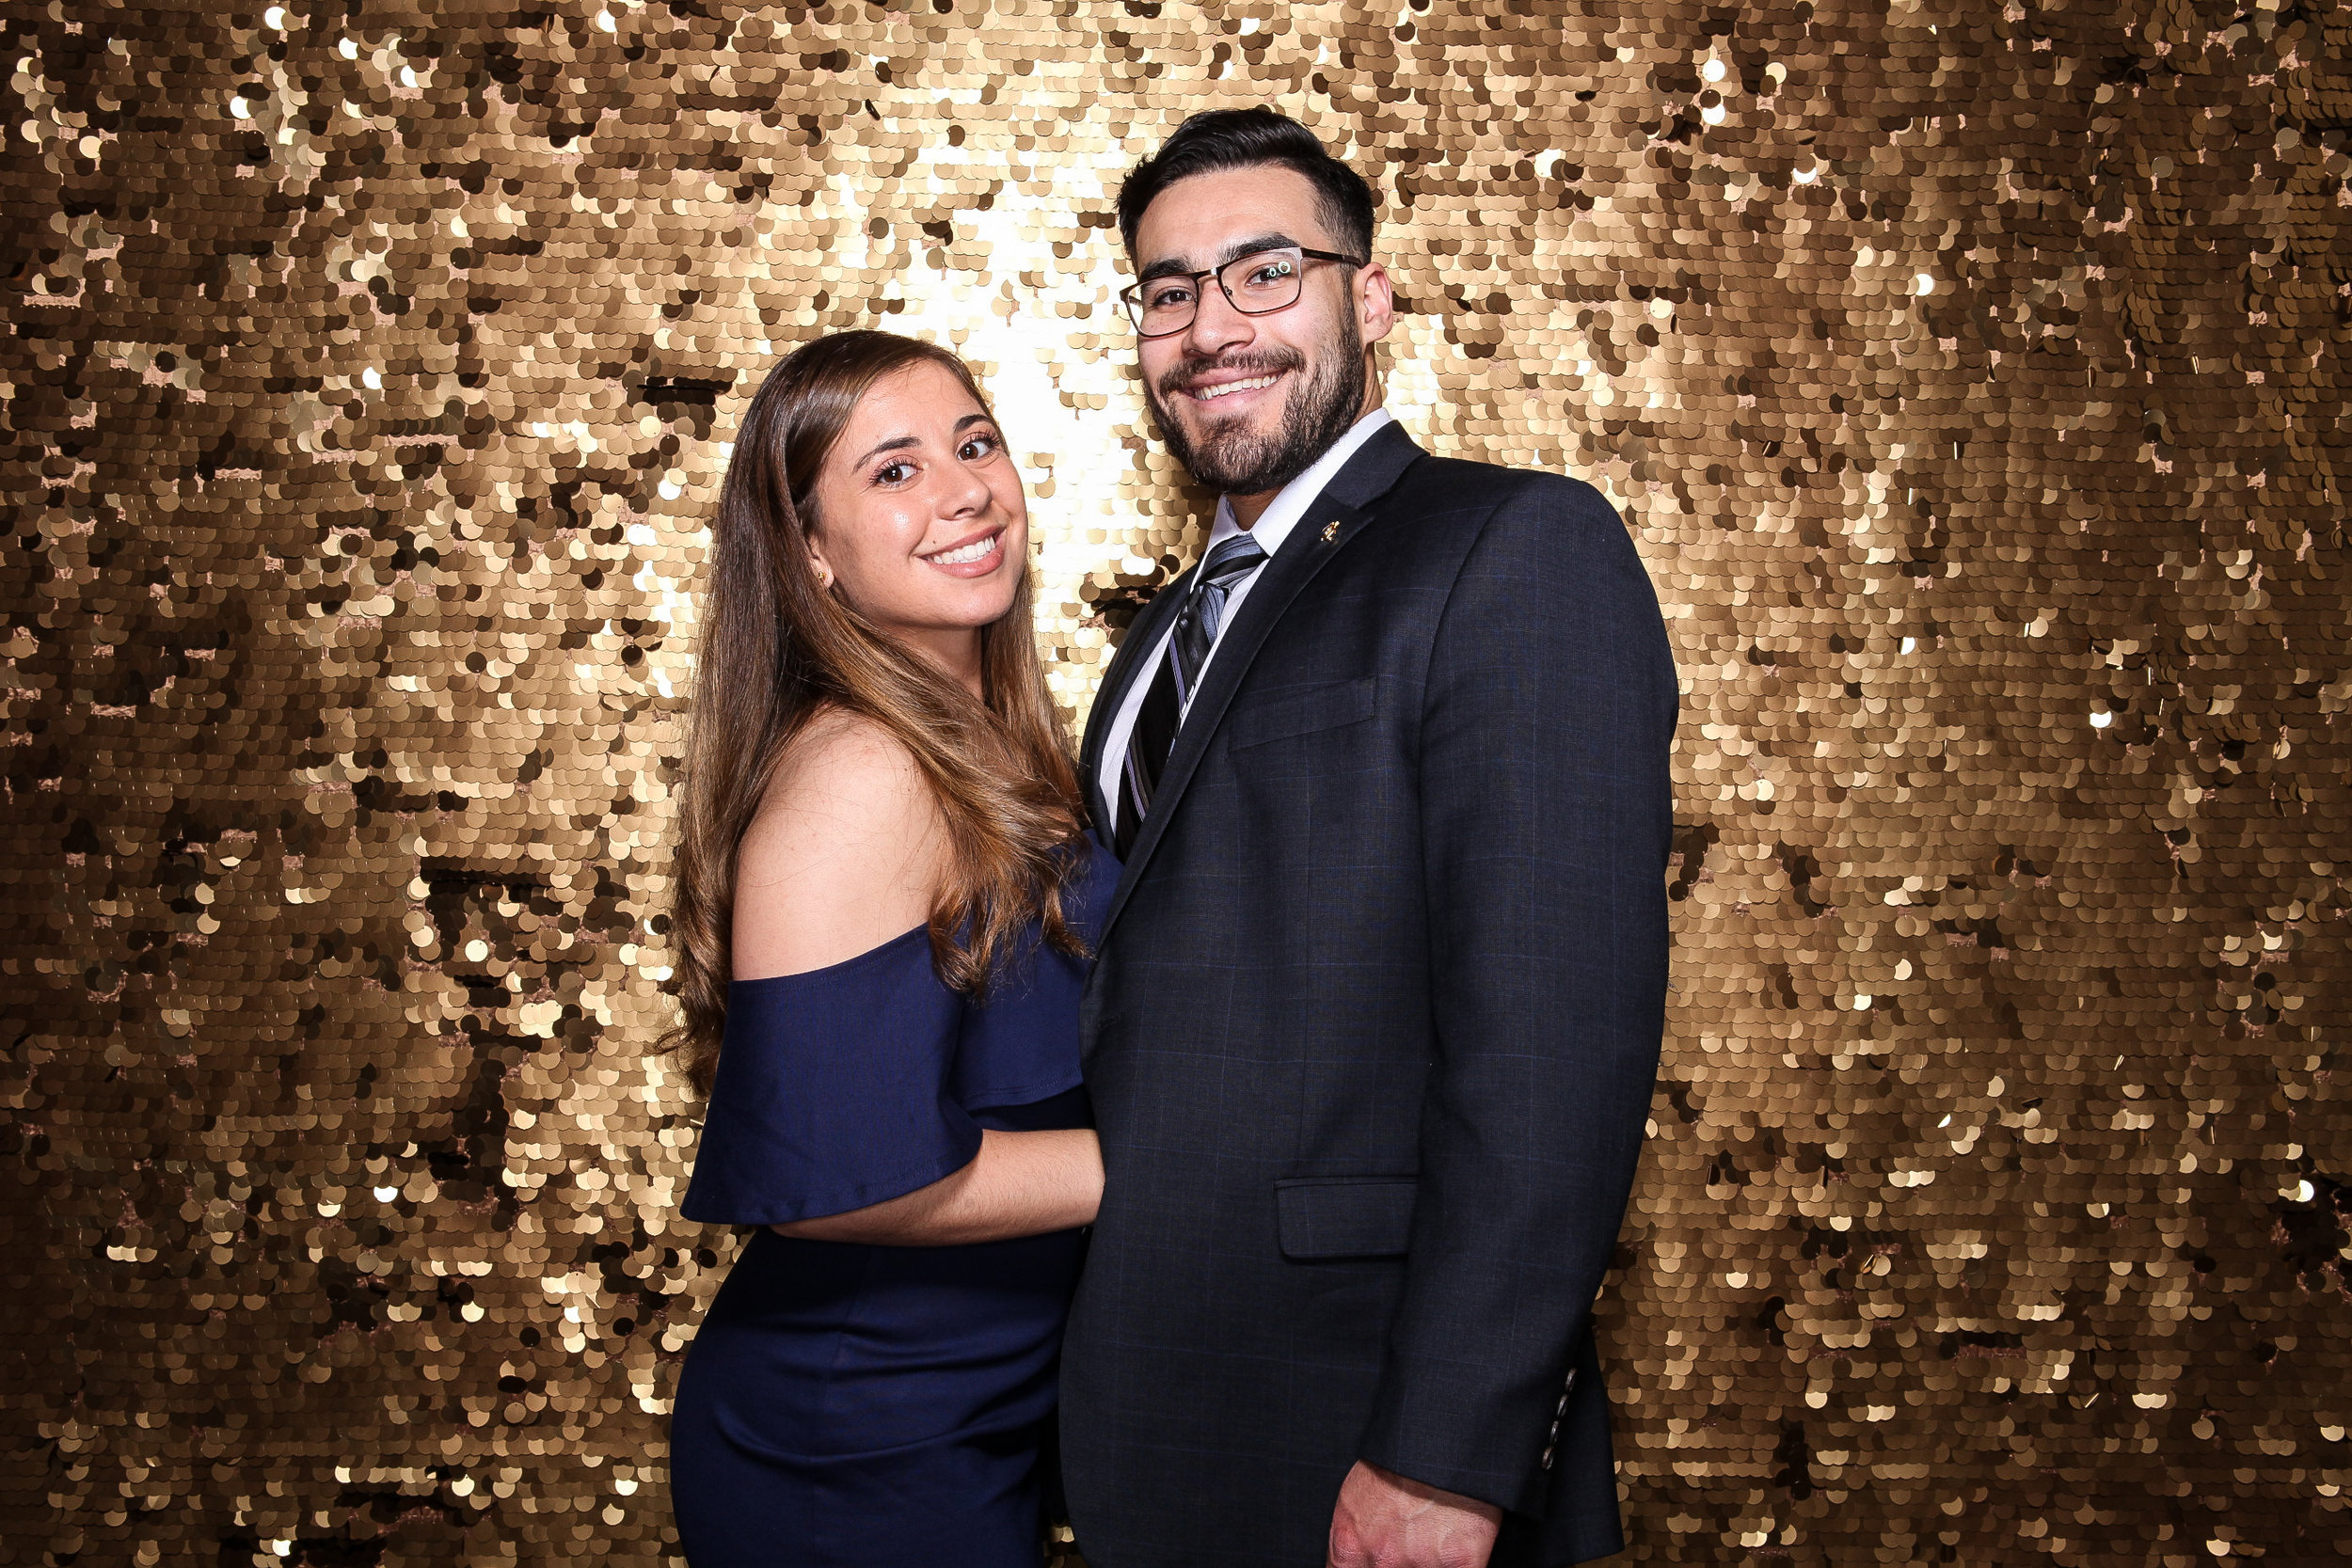 20190503_Adelphi_Senior_Formal-124.jpg